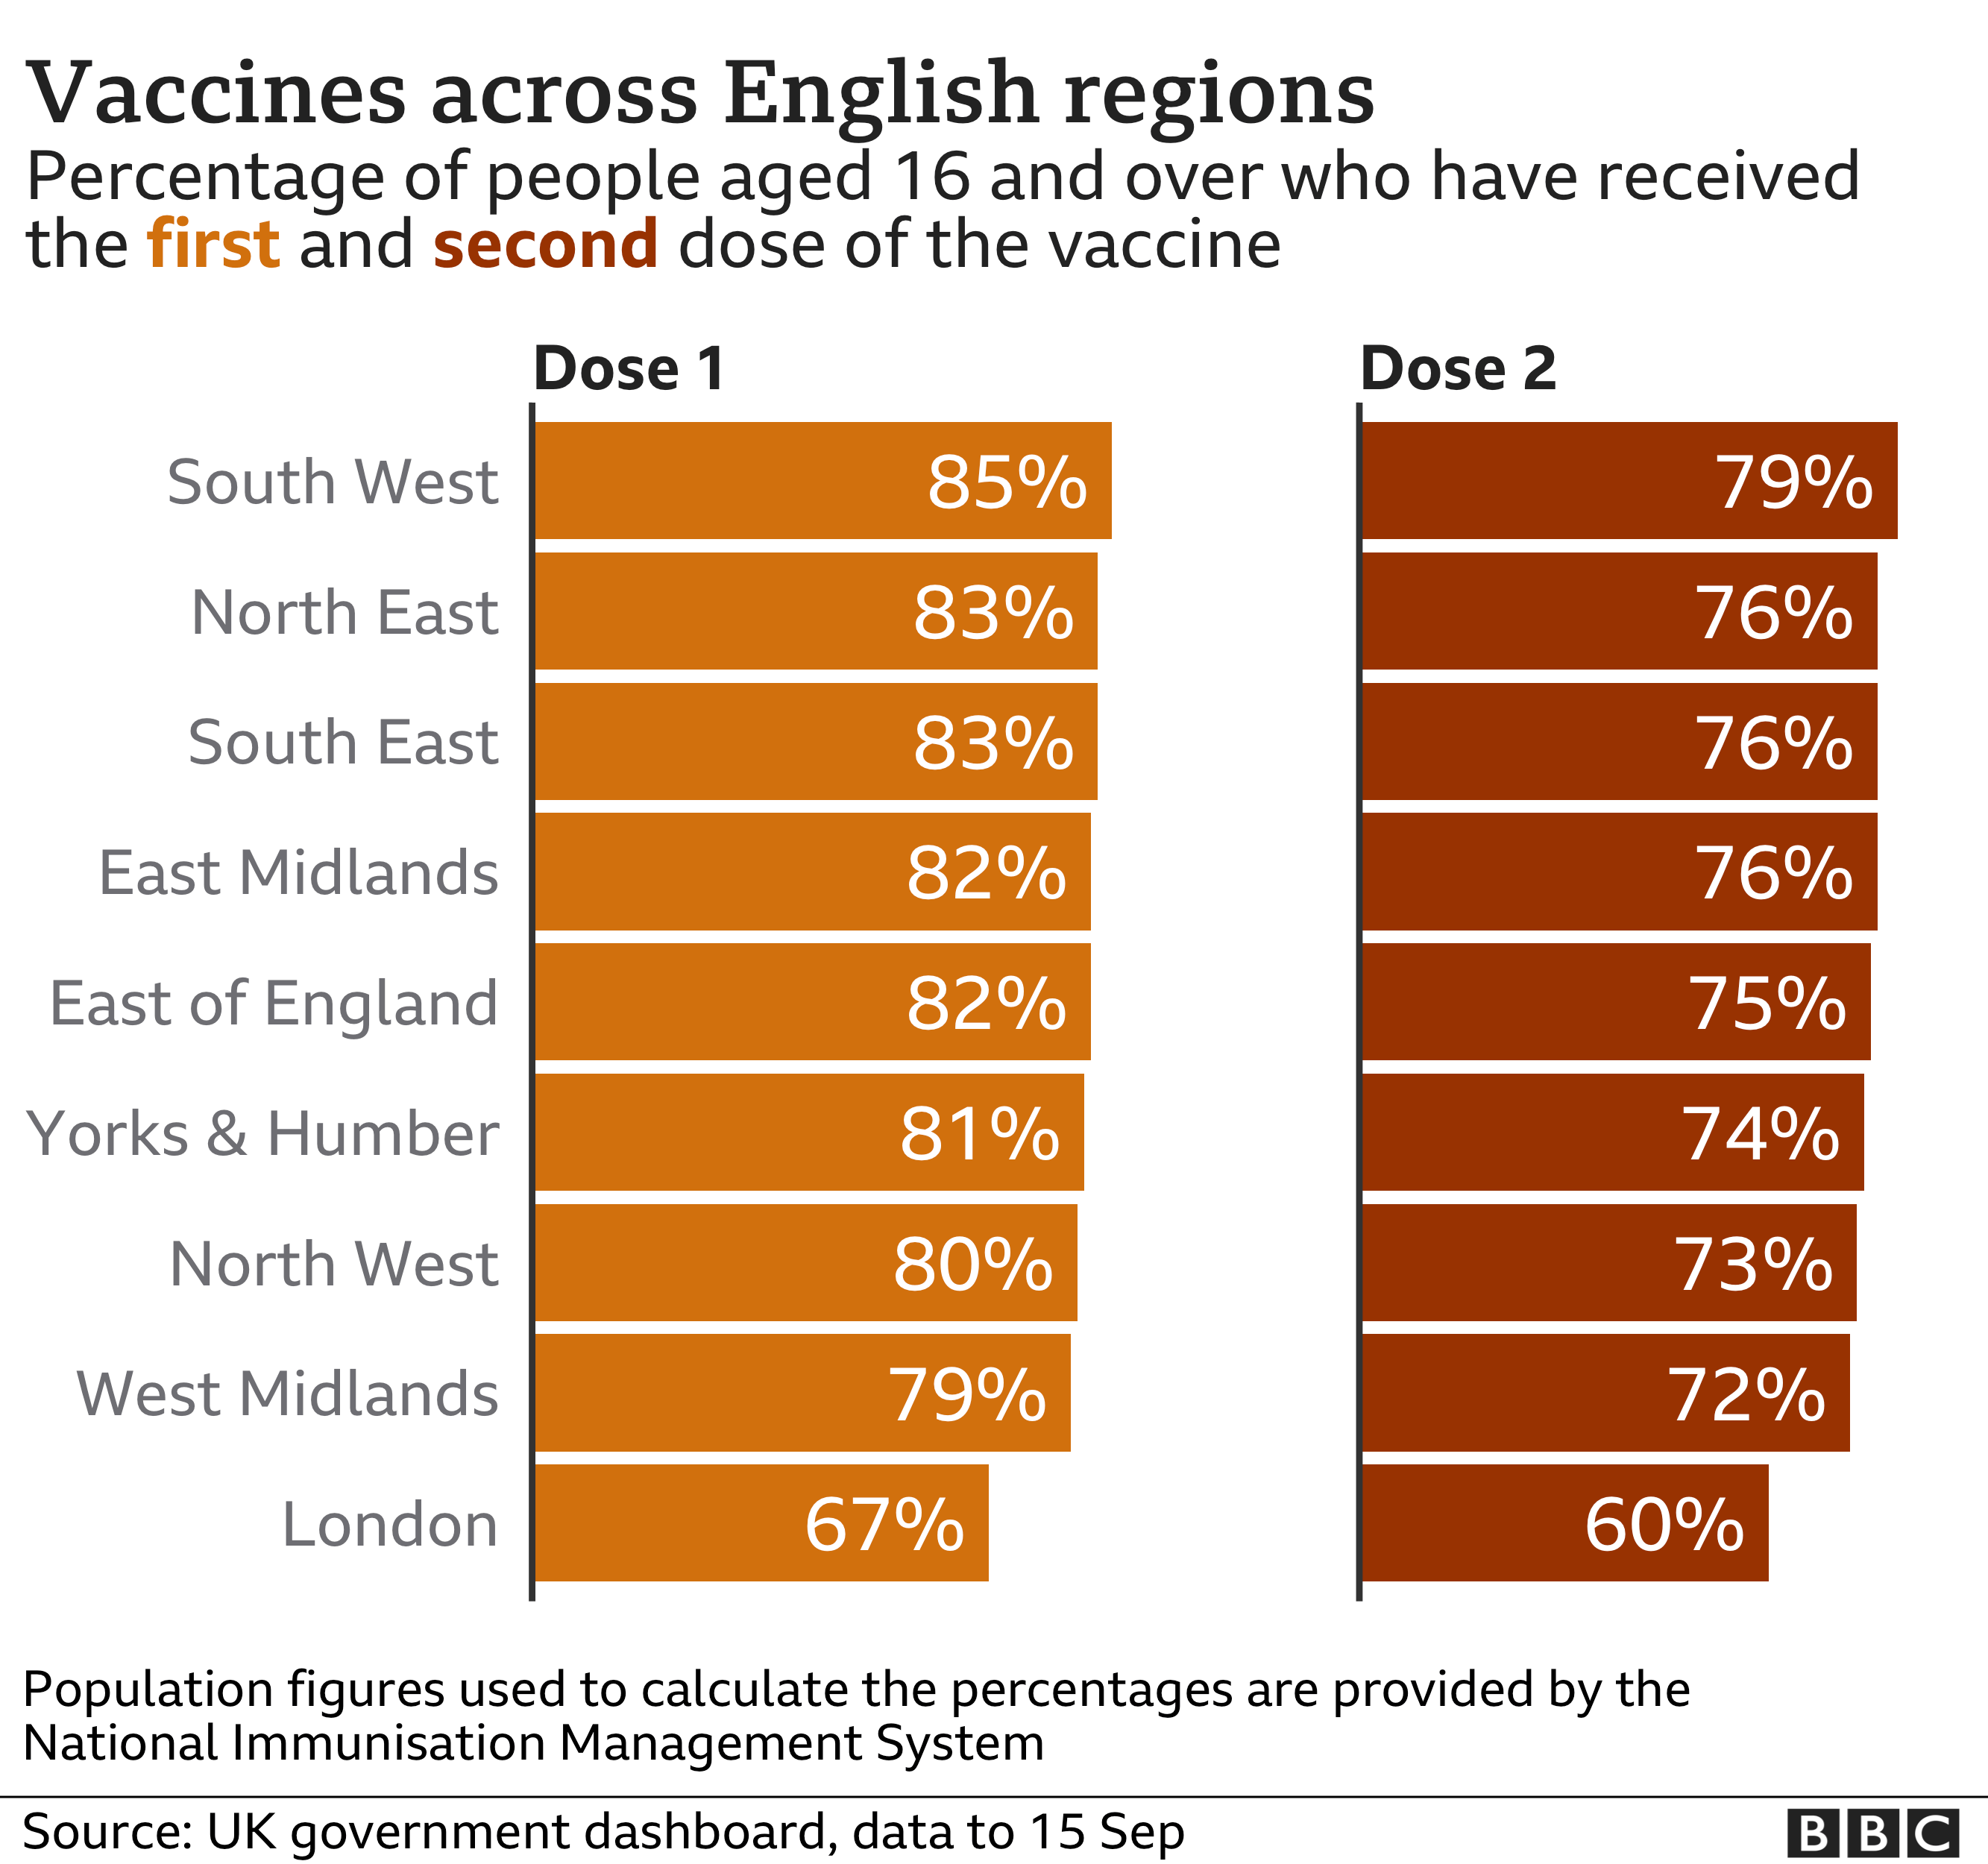 Chart of vaccine take up by English region - 85% of those aged 16 or over in the South West have received one dose of the vaccine, compared with 67% in London